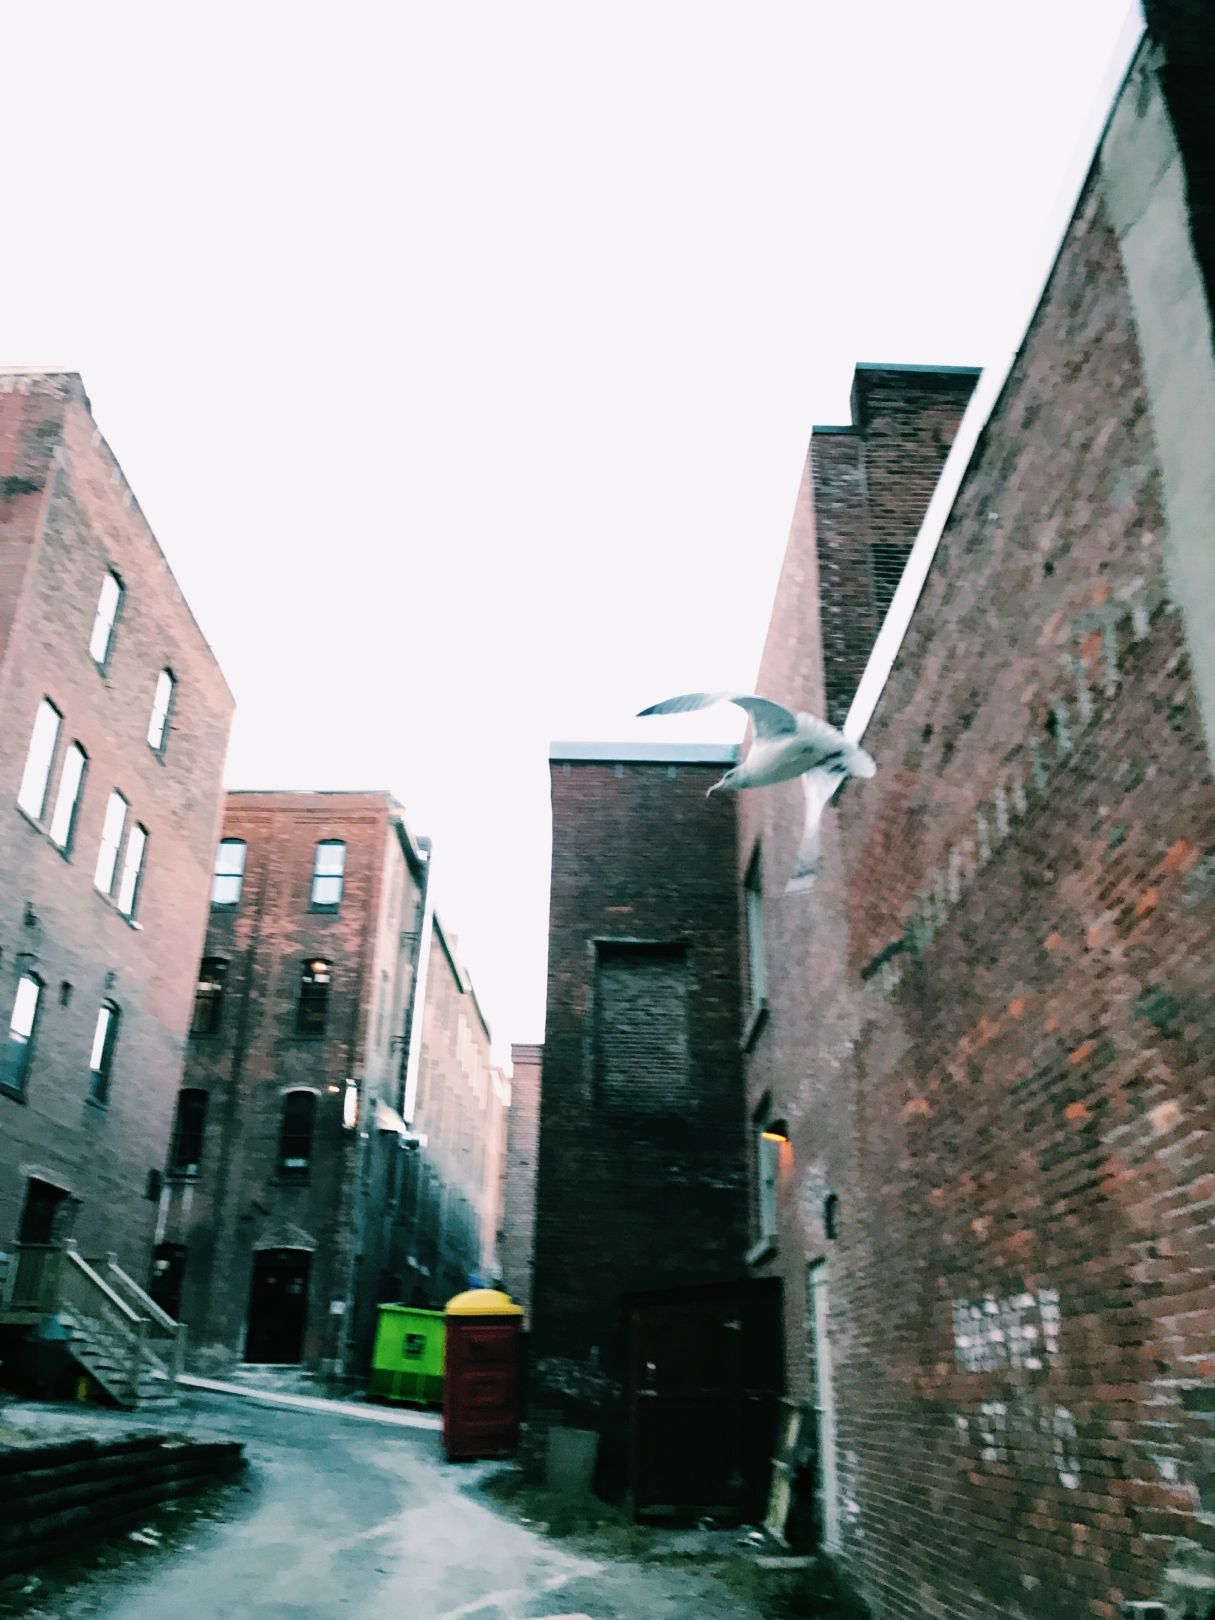 A photo depicting A seagull flying in an alleyway